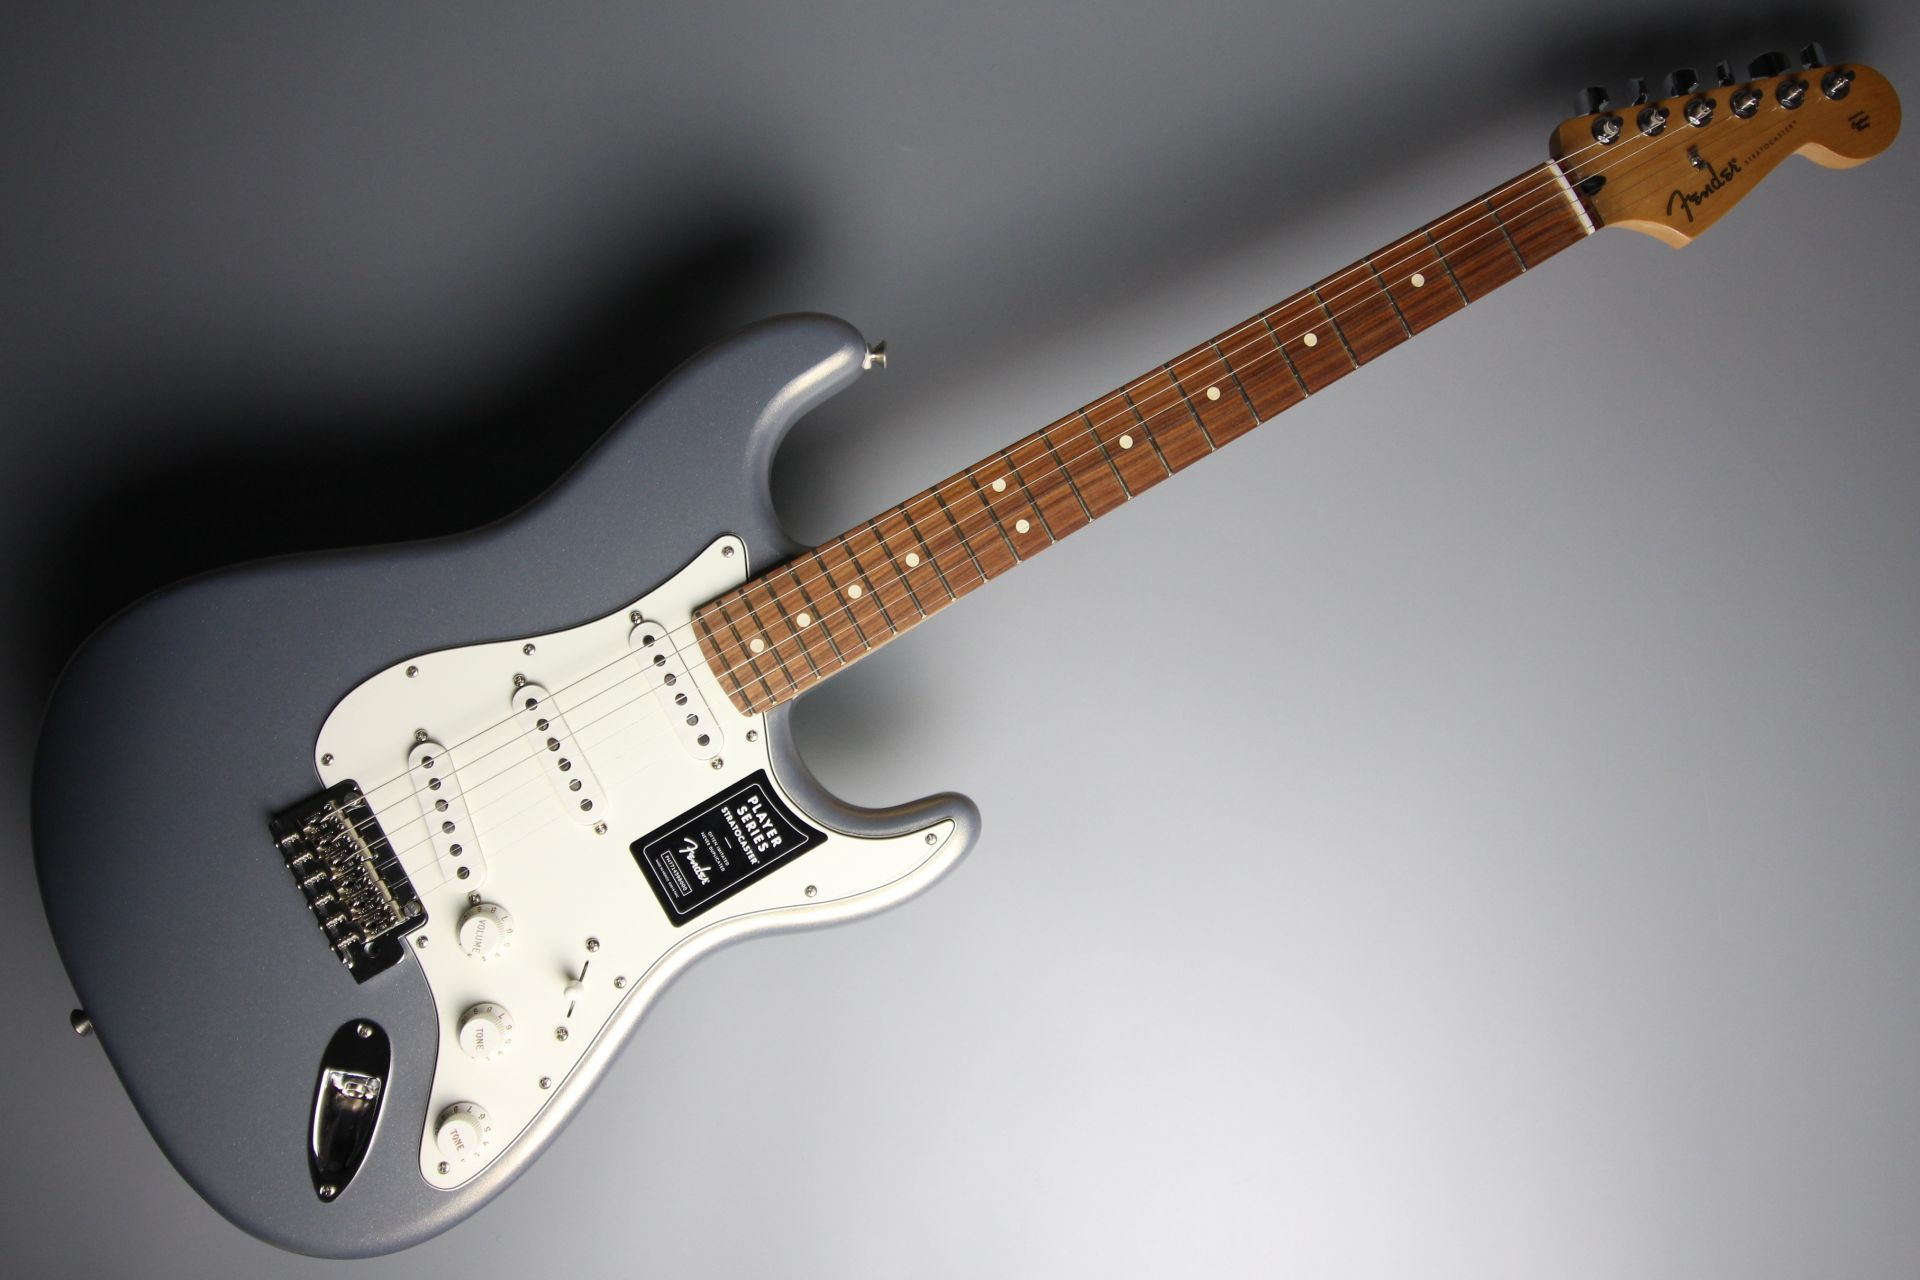 Player Stratocaster Silverのボディトップ-アップ画像